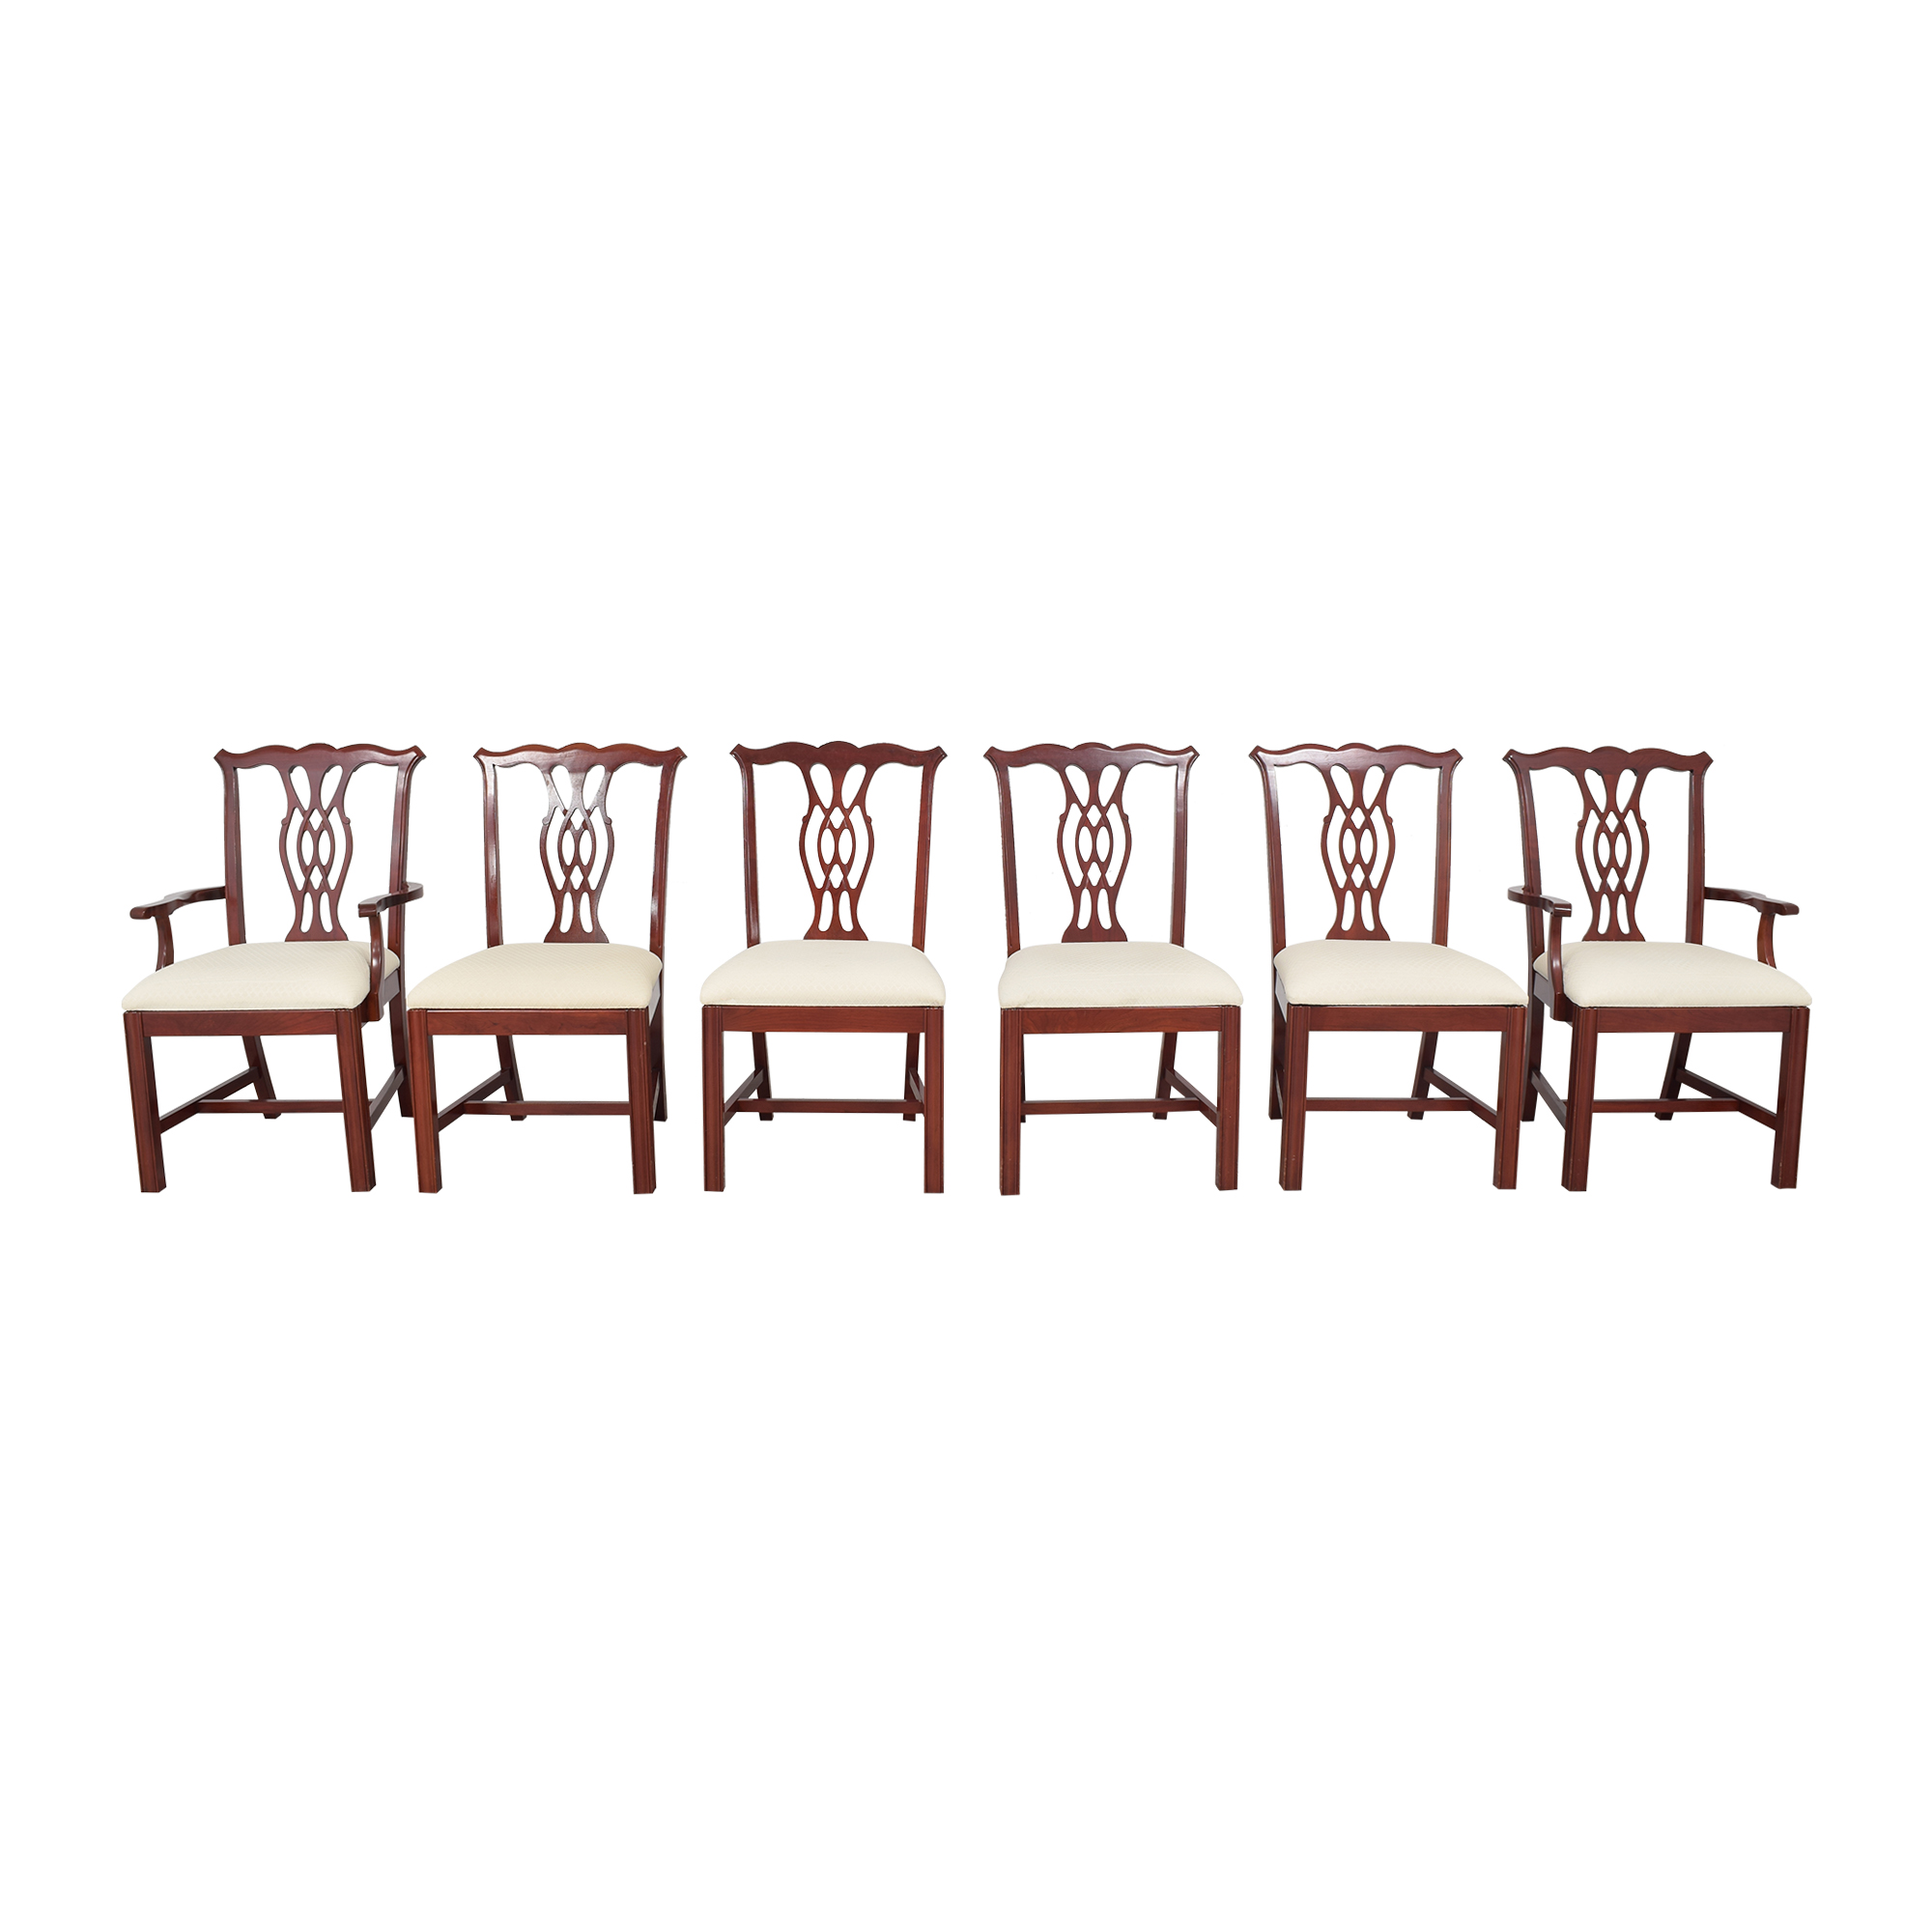 The Colonial Furniture Company The Colonial Furniture Company Chippendale-Style Dining Chairs discount